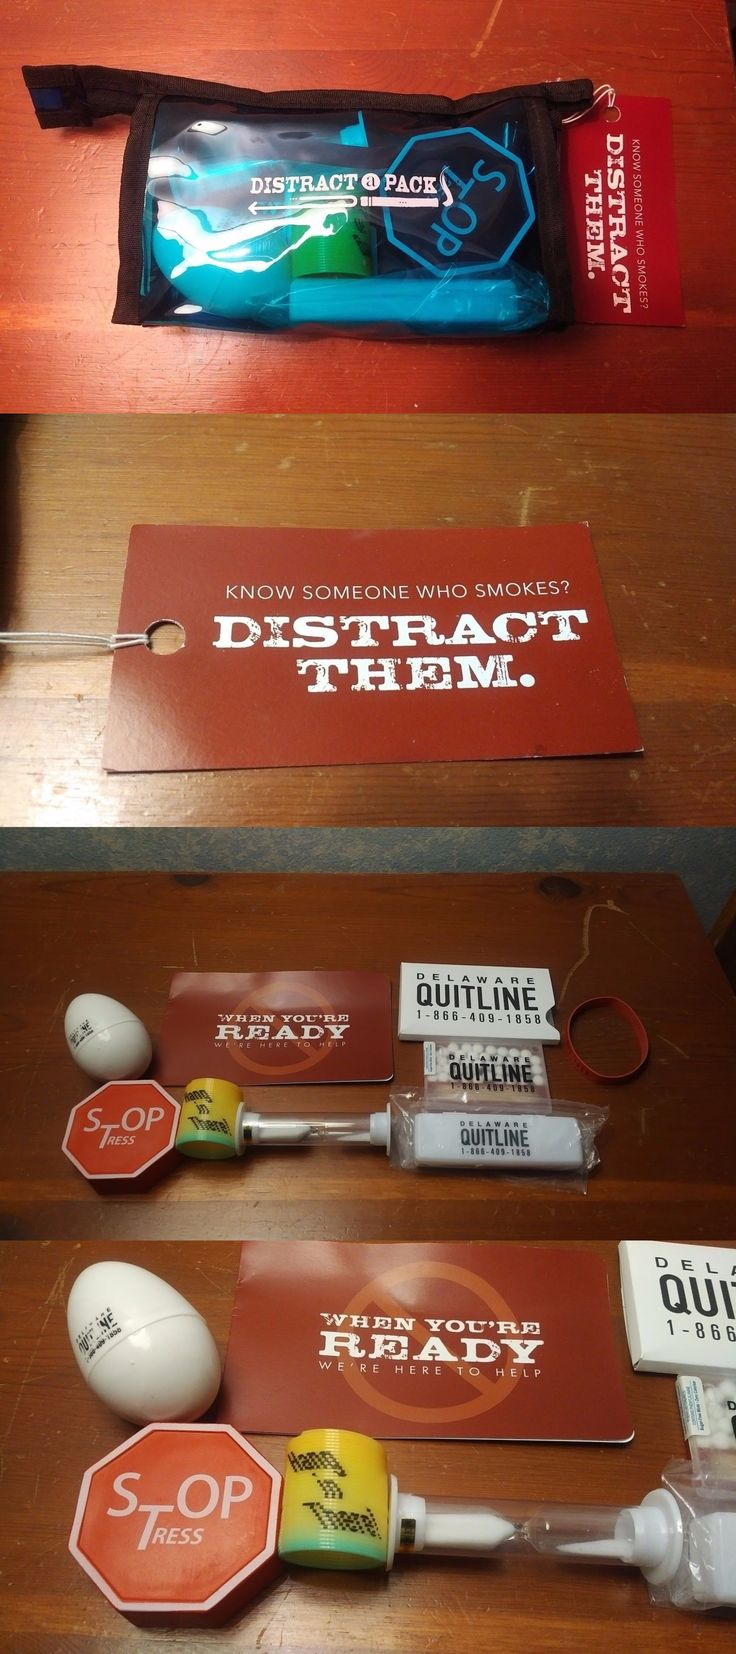 Other Smoking Cessation: Distract A Pack - Quit Smoking Kit - Several Stop Smoking Aids In The Pack -> BUY IT NOW ONLY: $33.33 on eBay!